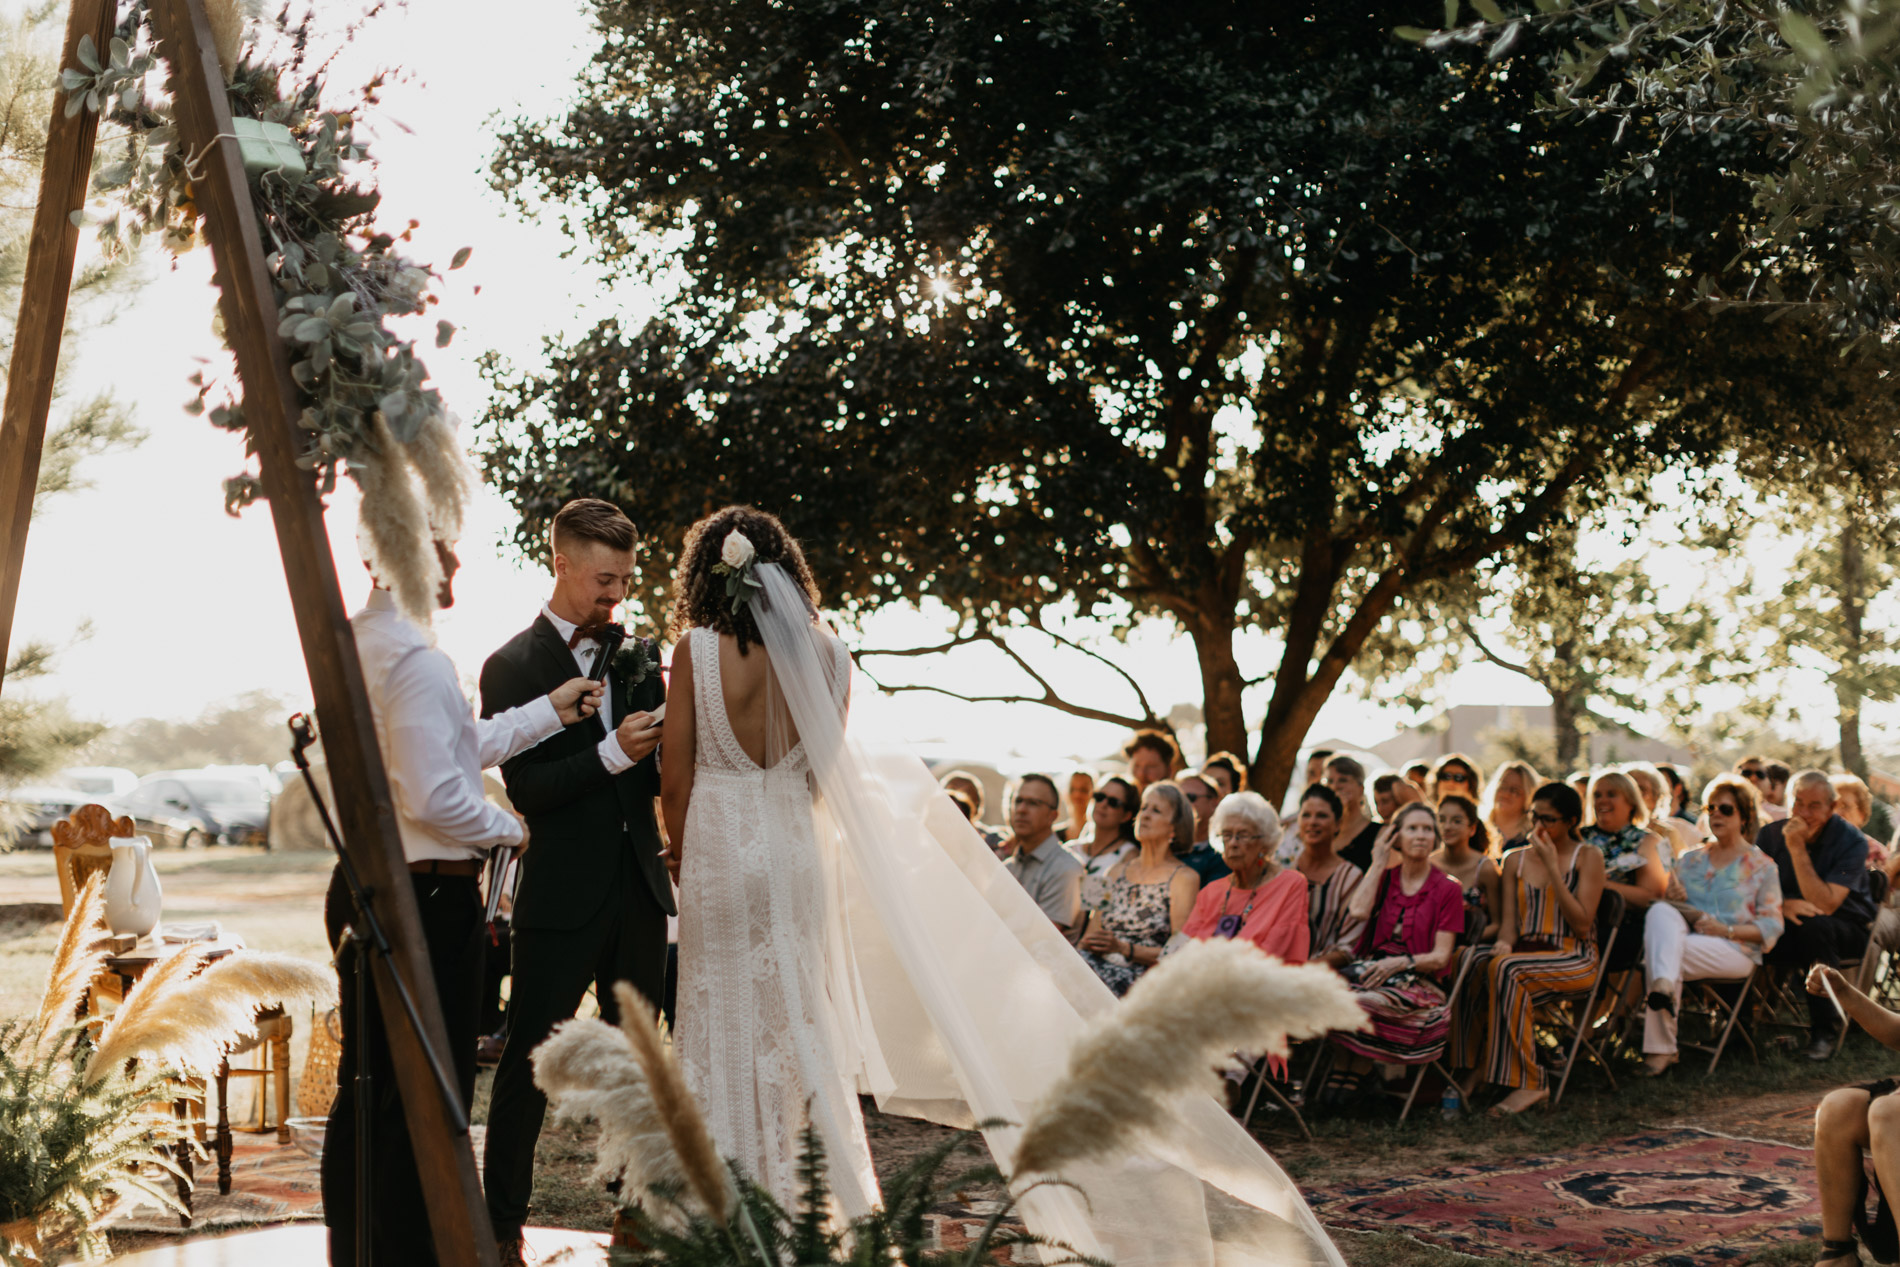 Bride and groom standing at altar infant of guests